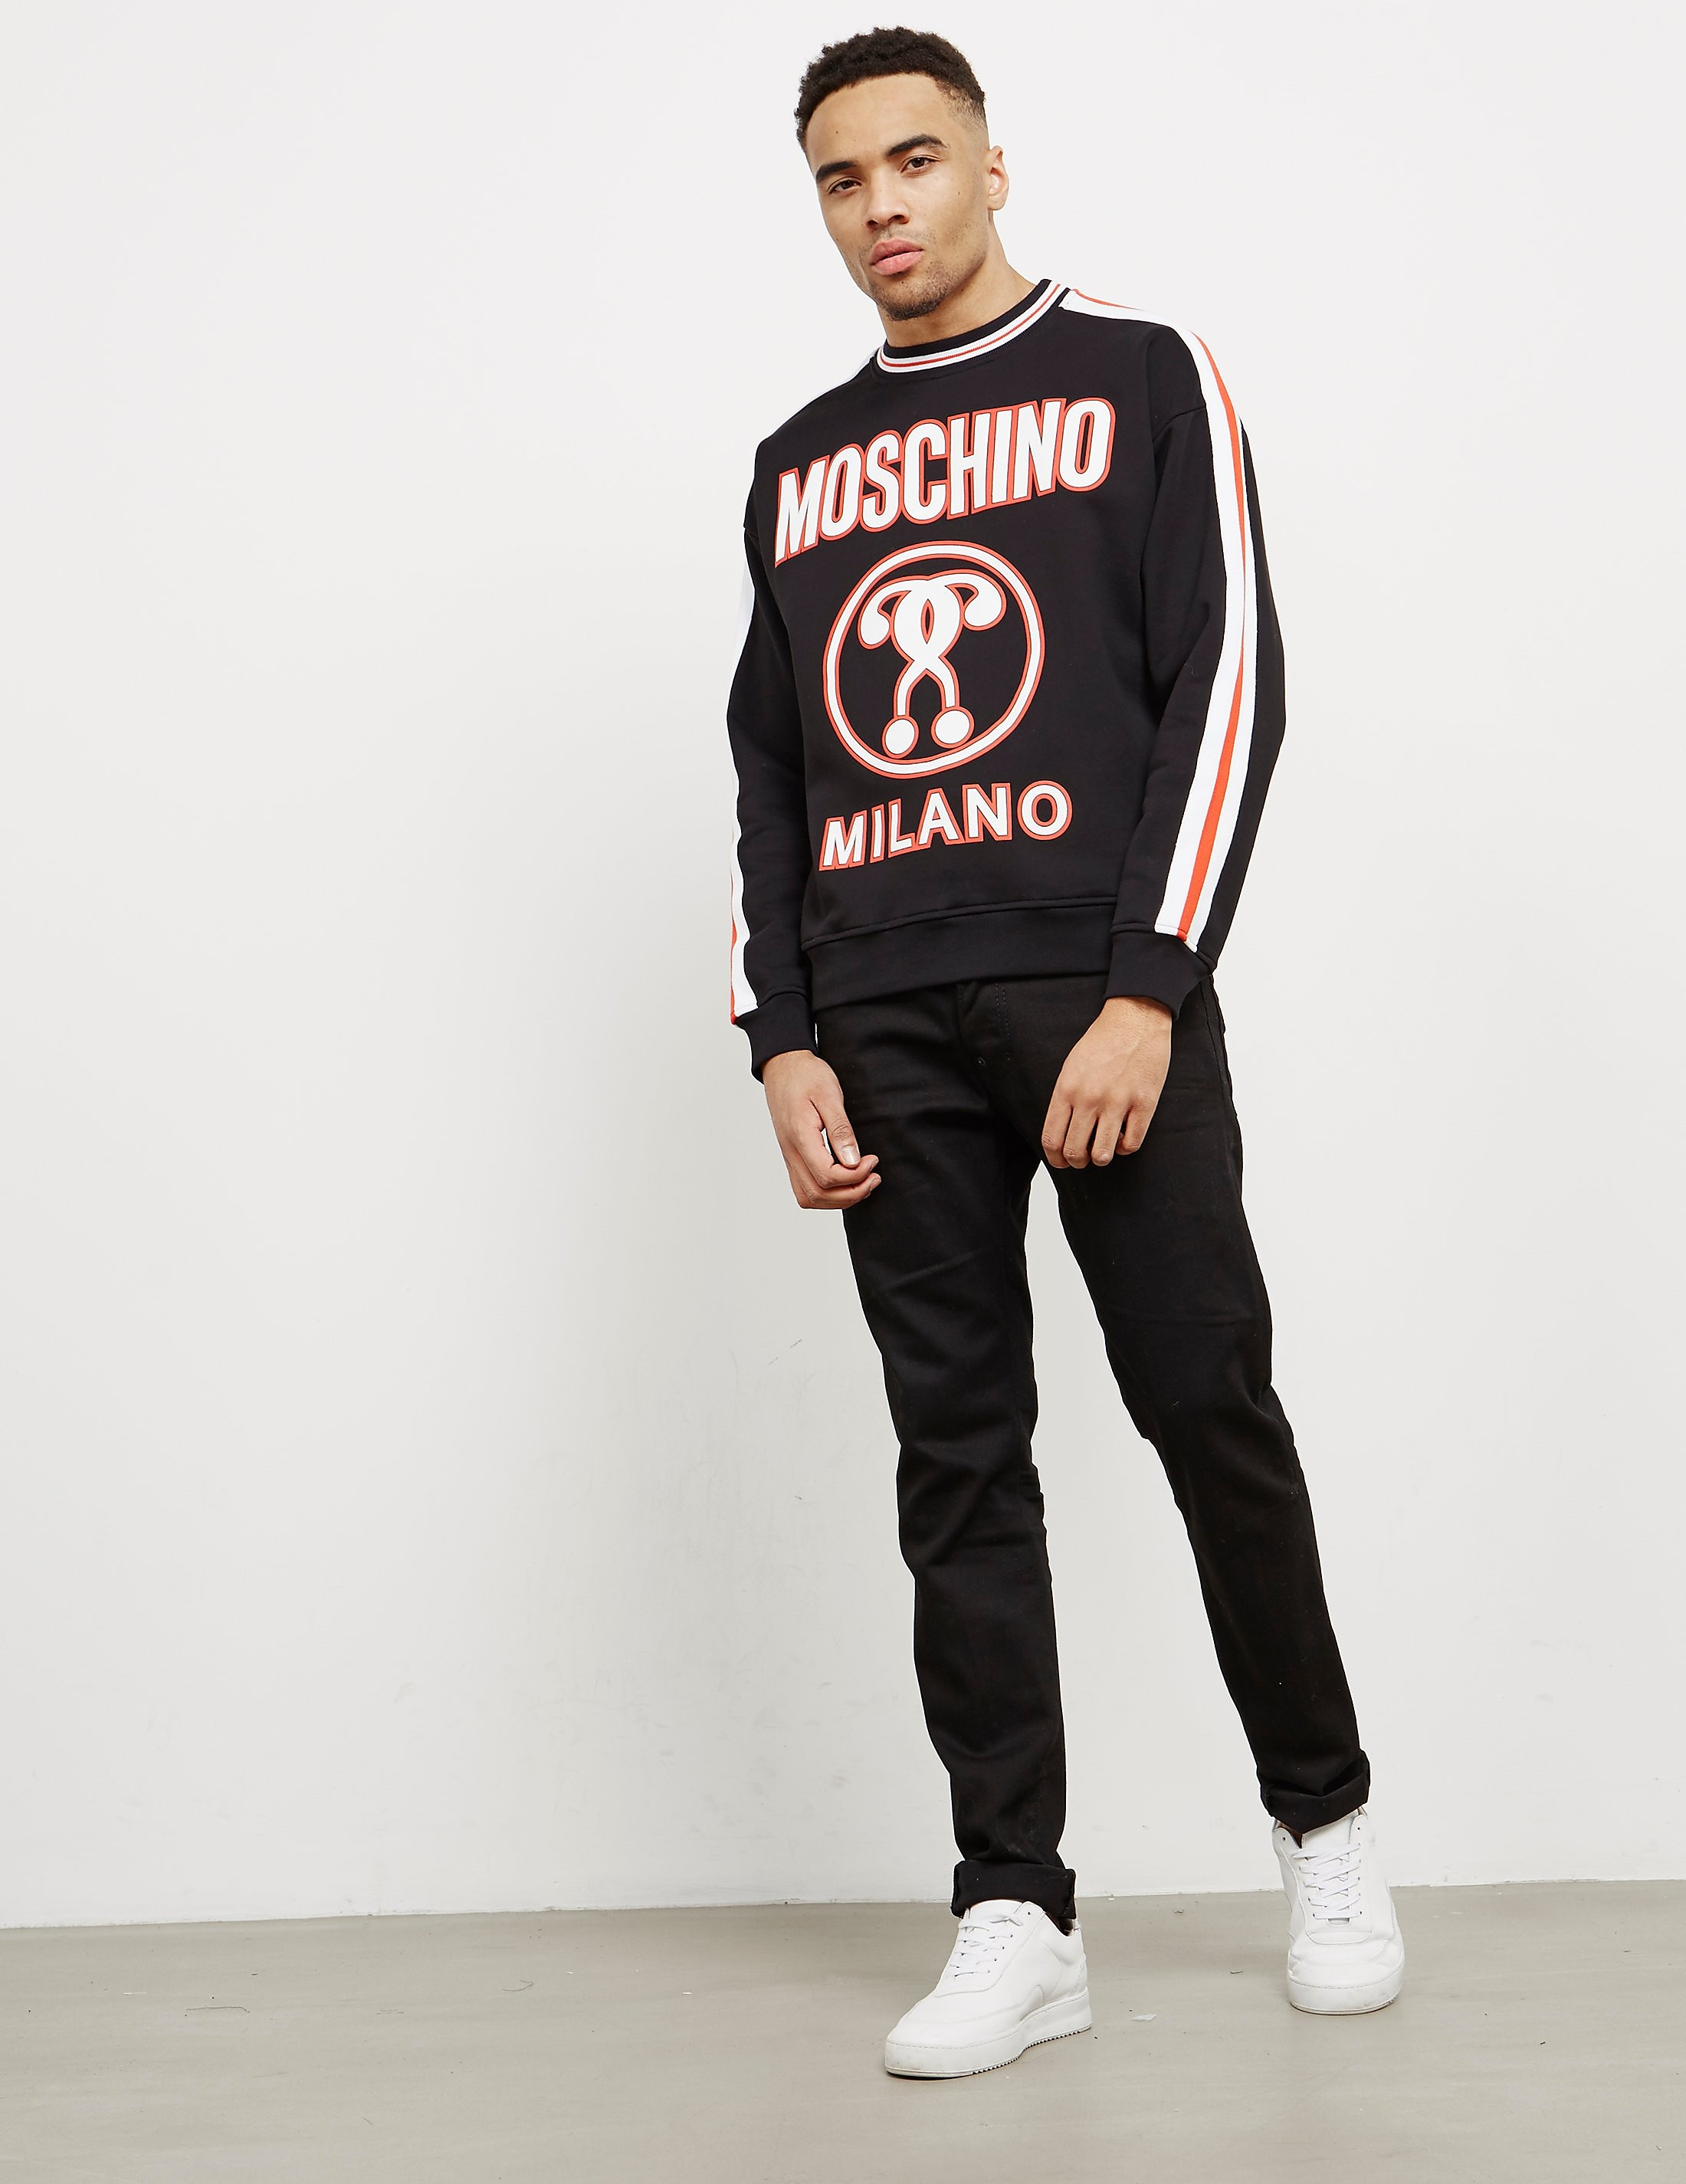 Moschino Milano Tape Sweatshirt - Online Exclusive